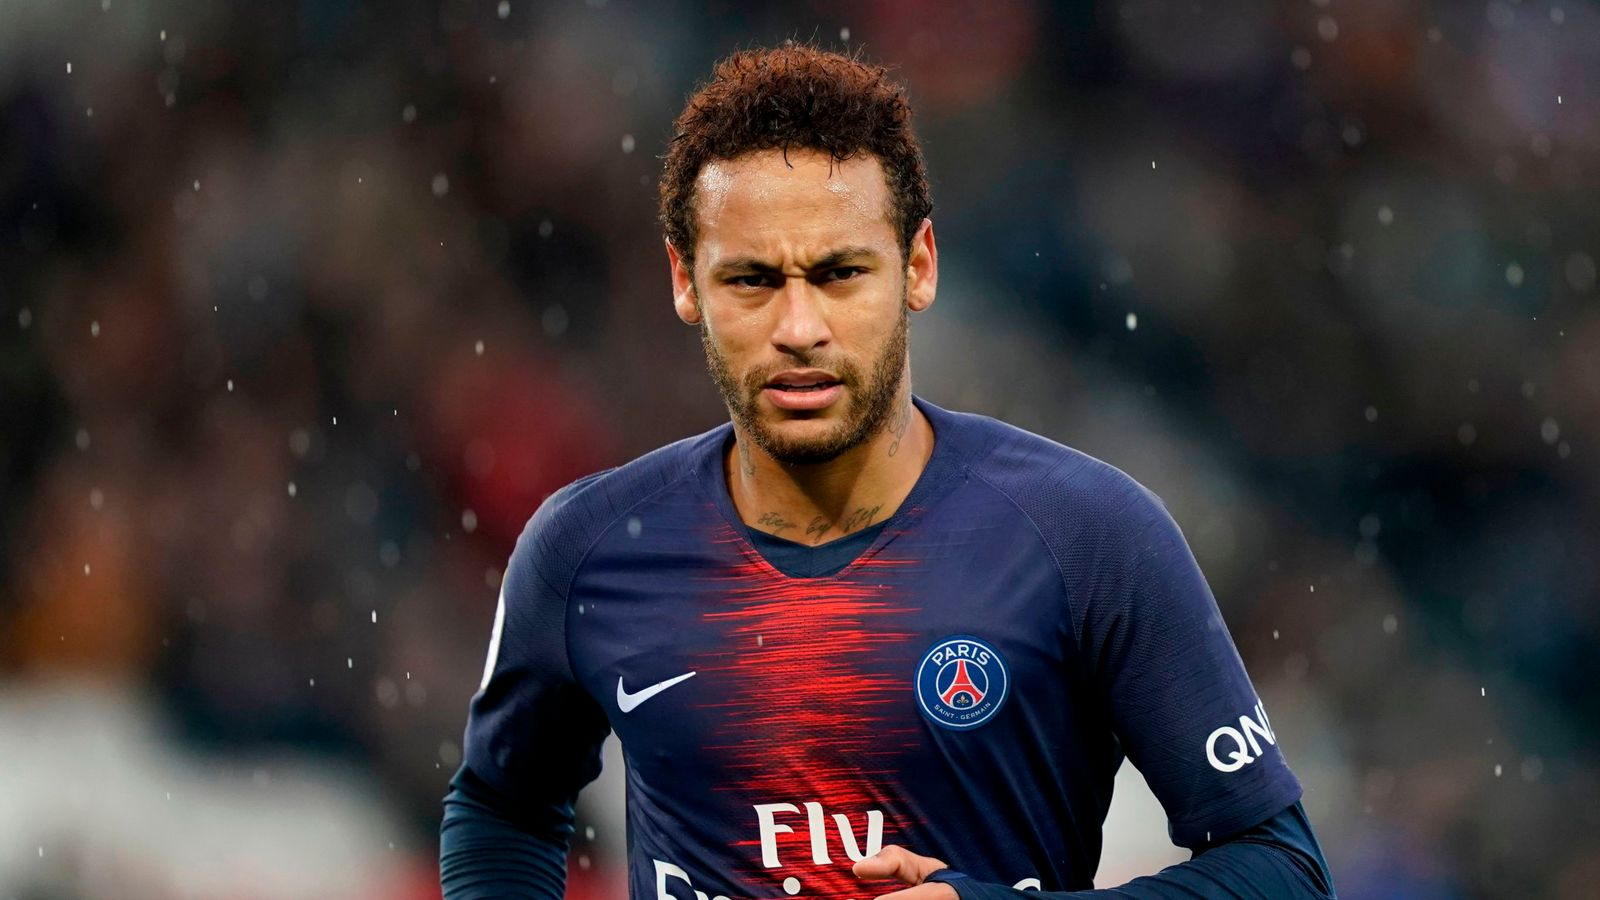 Rape allegation against Neymar dropped 'due to lack of evidence' - report